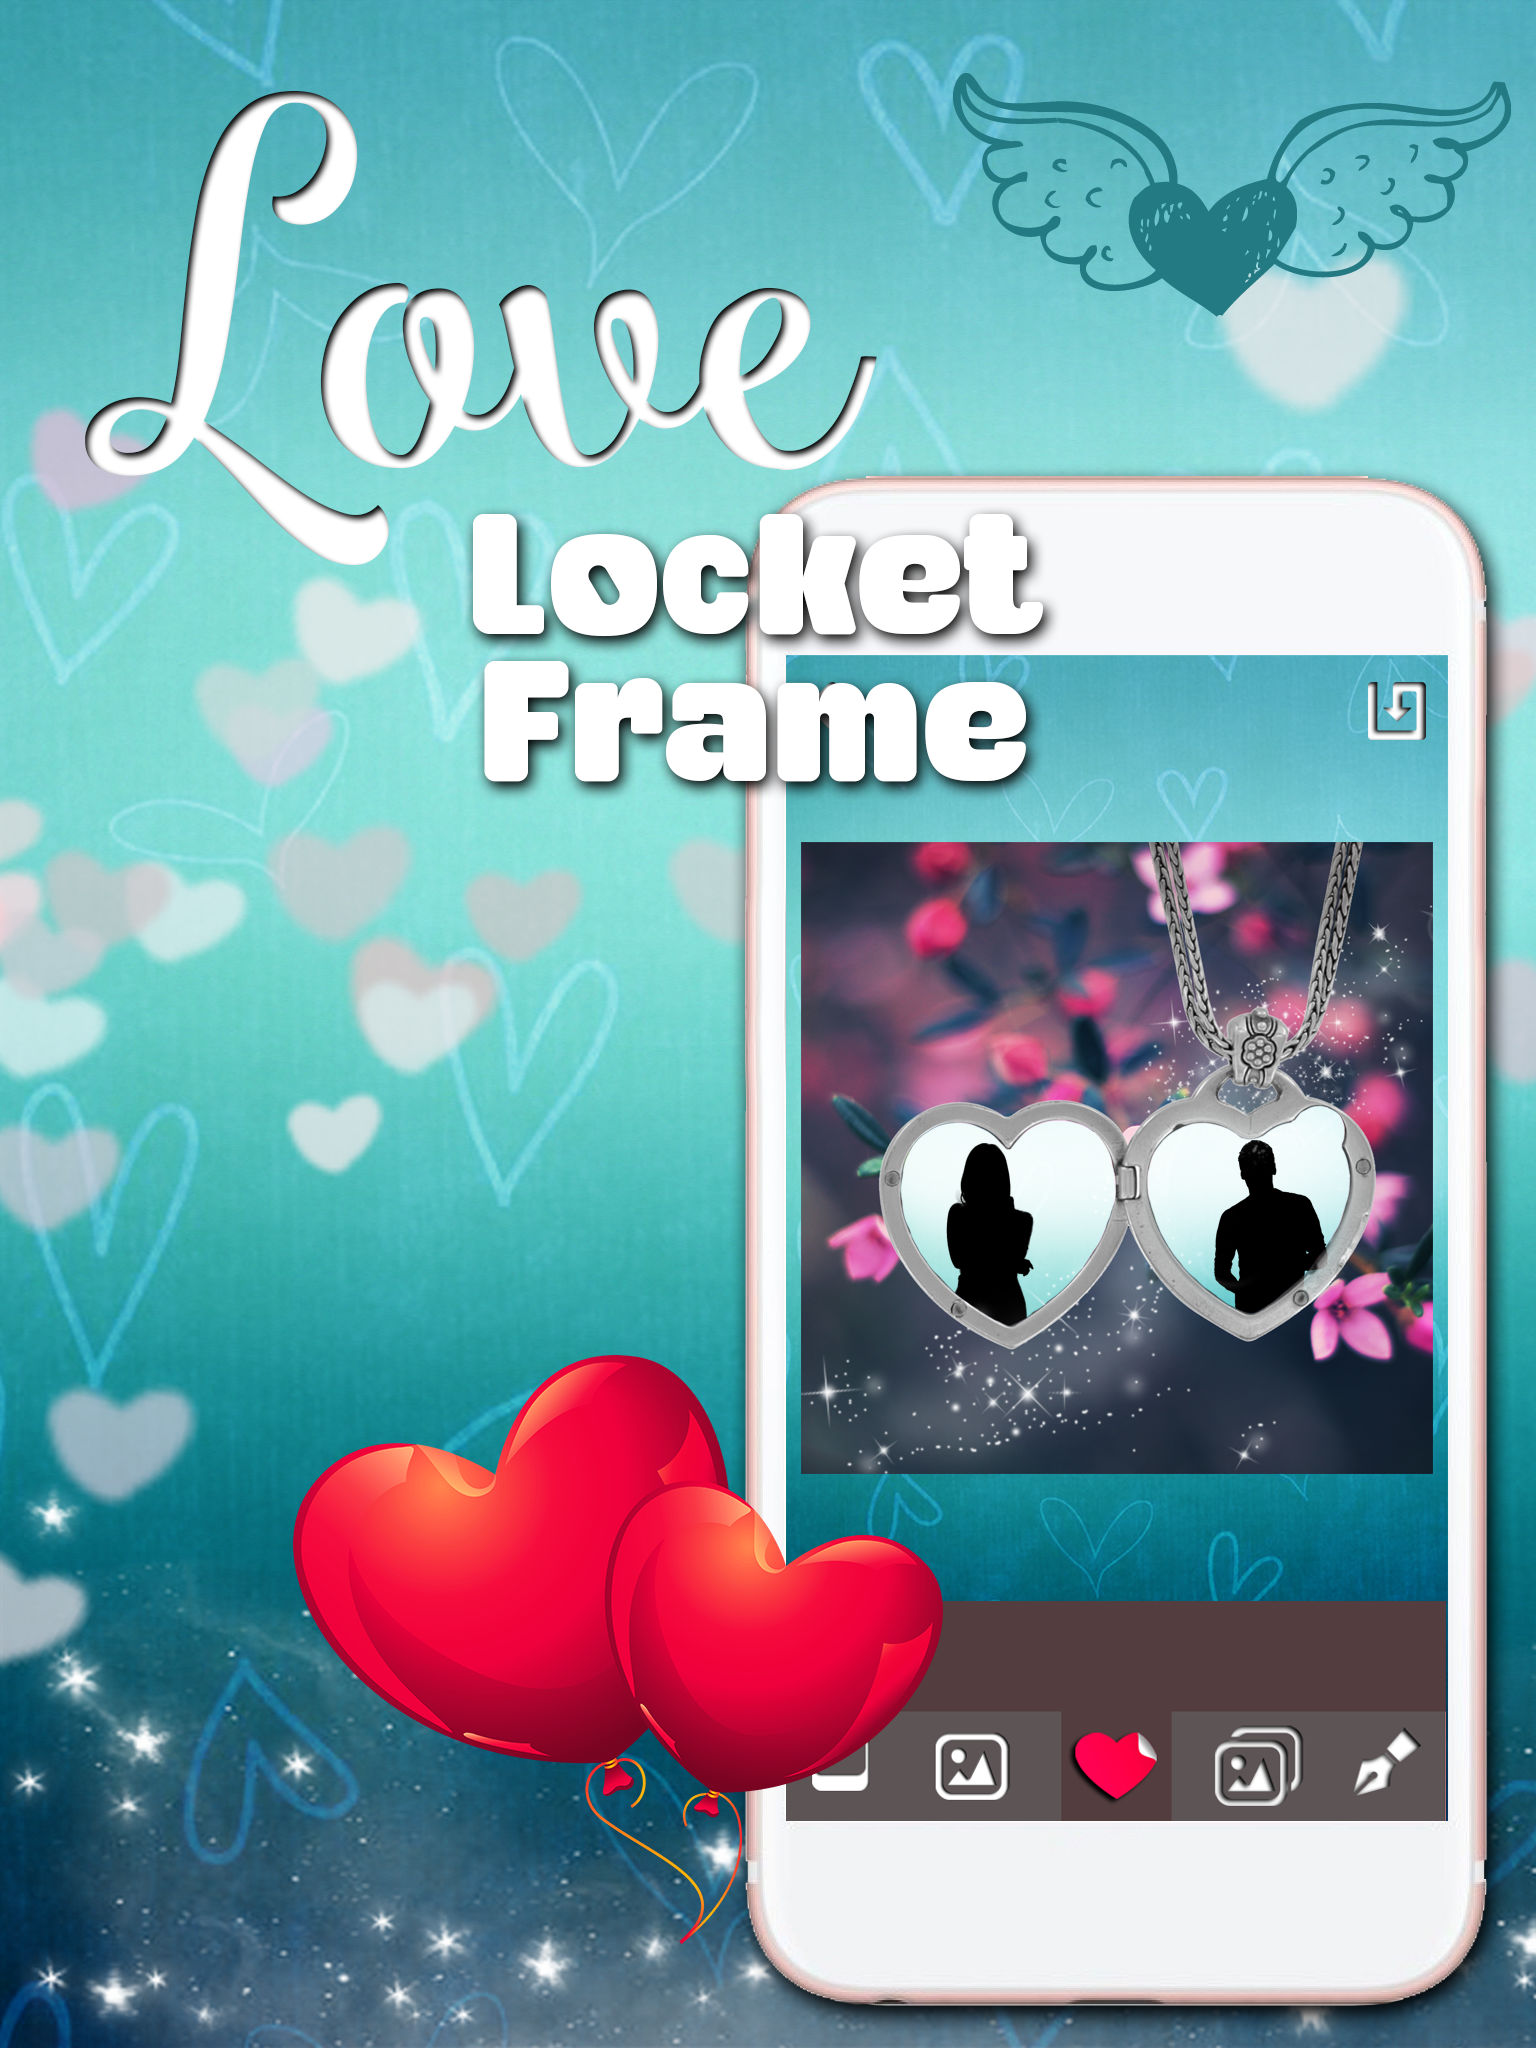 Locket frames for love pics filter your romantic photos and add you will soon forget about digital photo frames because the valentine decorations on our locket photos are the new picture craze jeuxipadfo Gallery